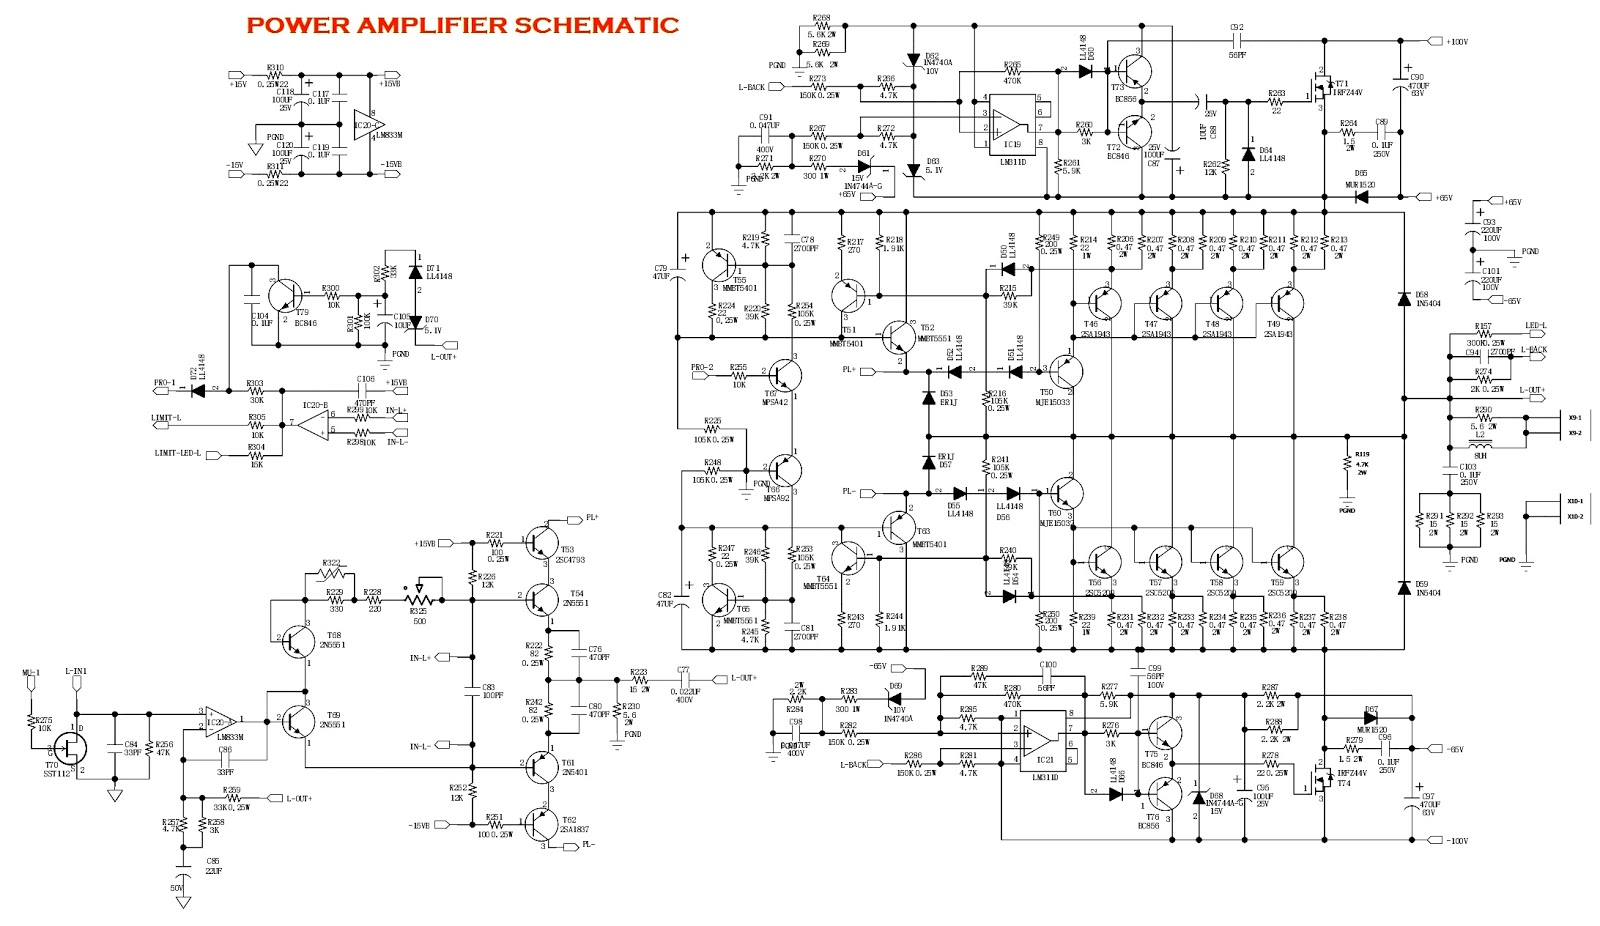 Amplifier diagrams wiring diagram house diagram amplifier network diagram symbols wiring diagrams jeep amplifier diagram amplifierhtml ccuart Choice Image